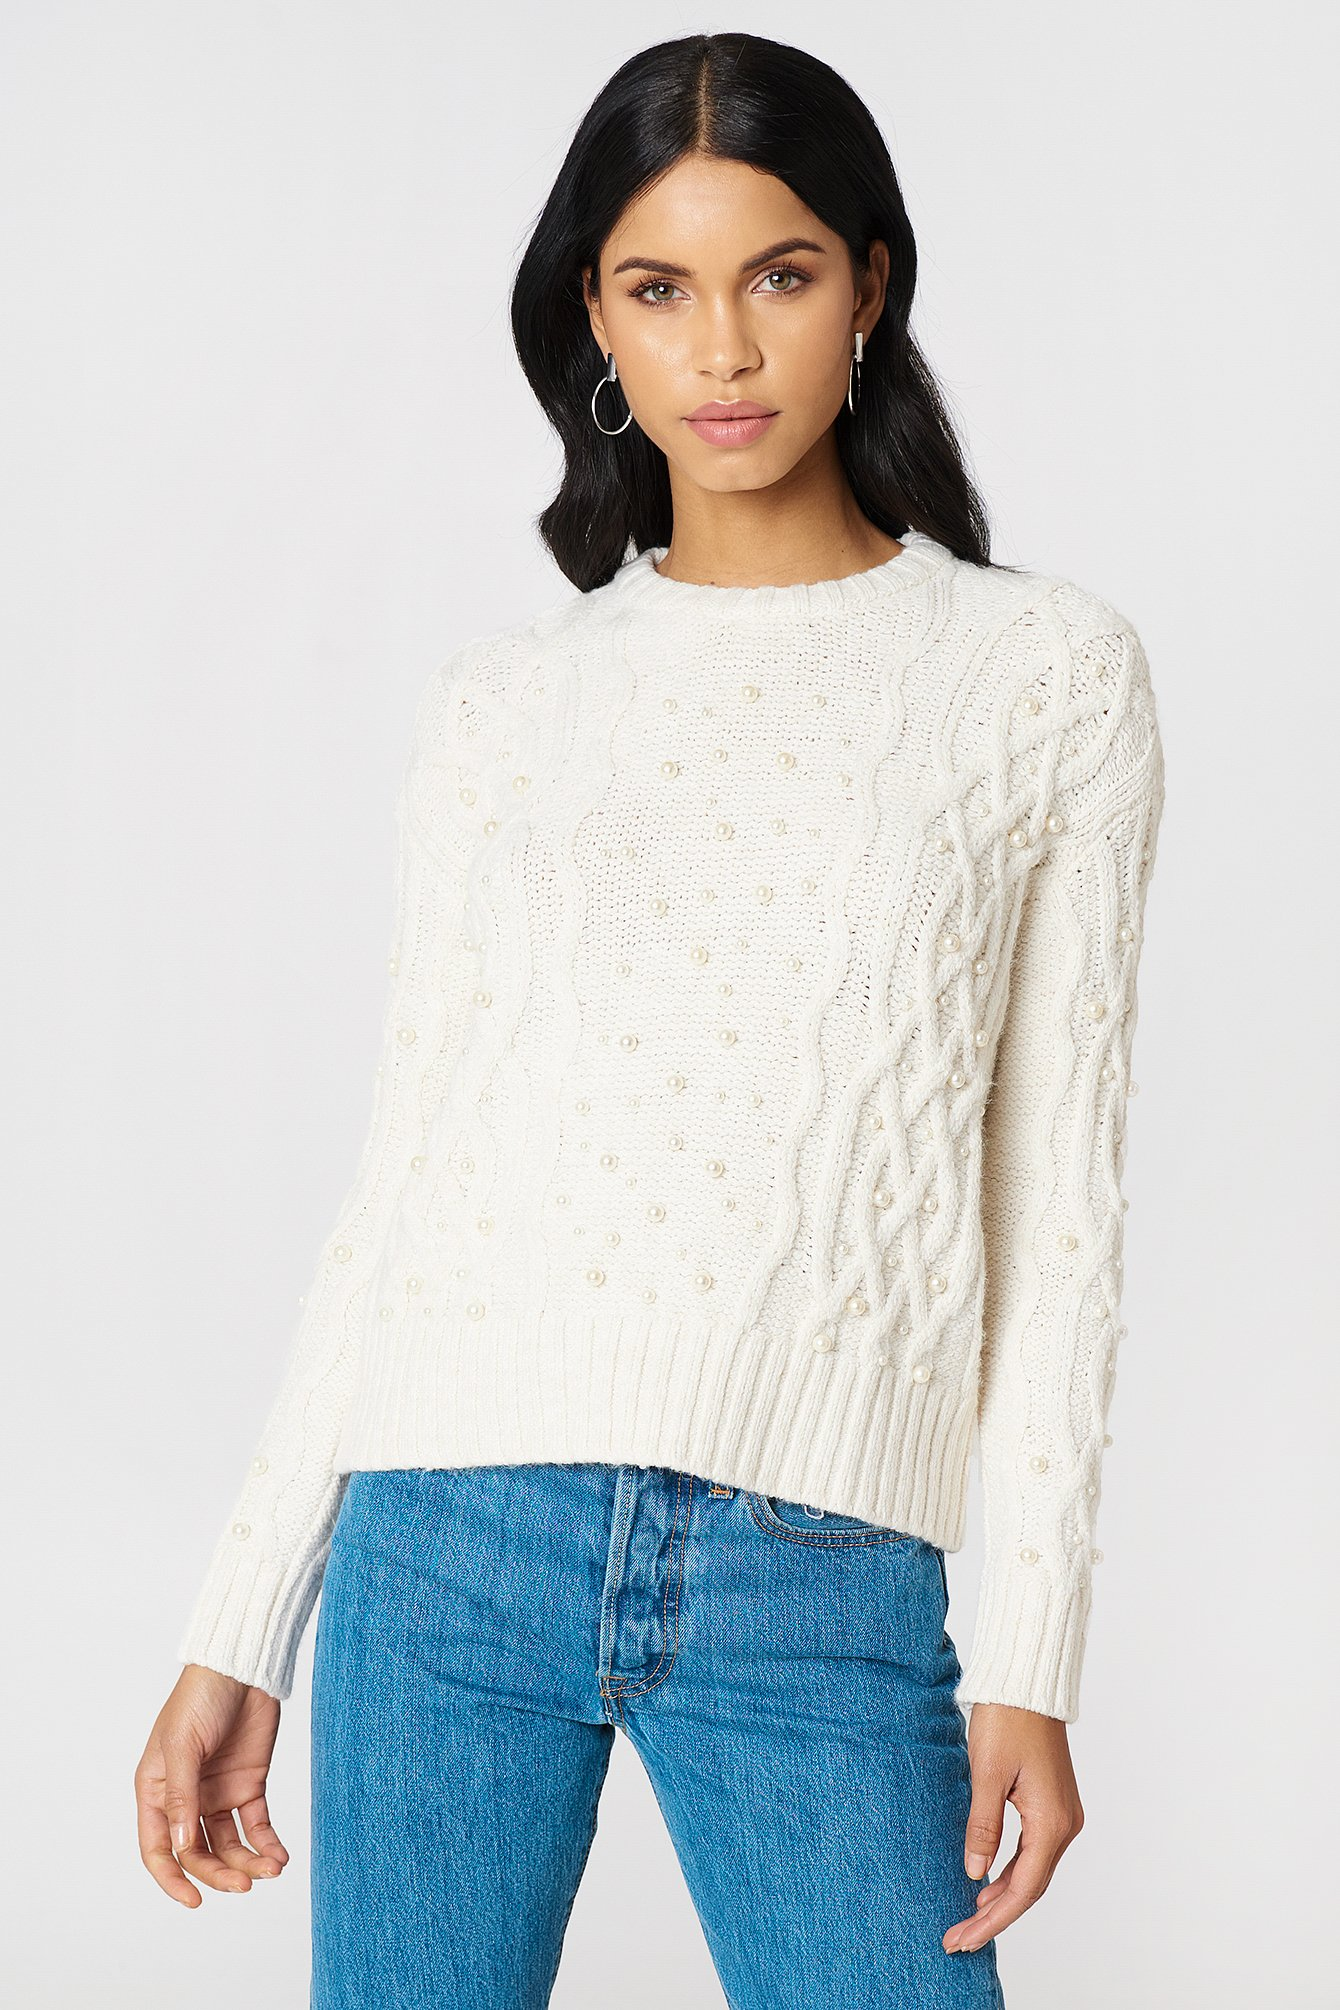 PEARL KNITTED SWEATER - WHITE, OFFWHITE